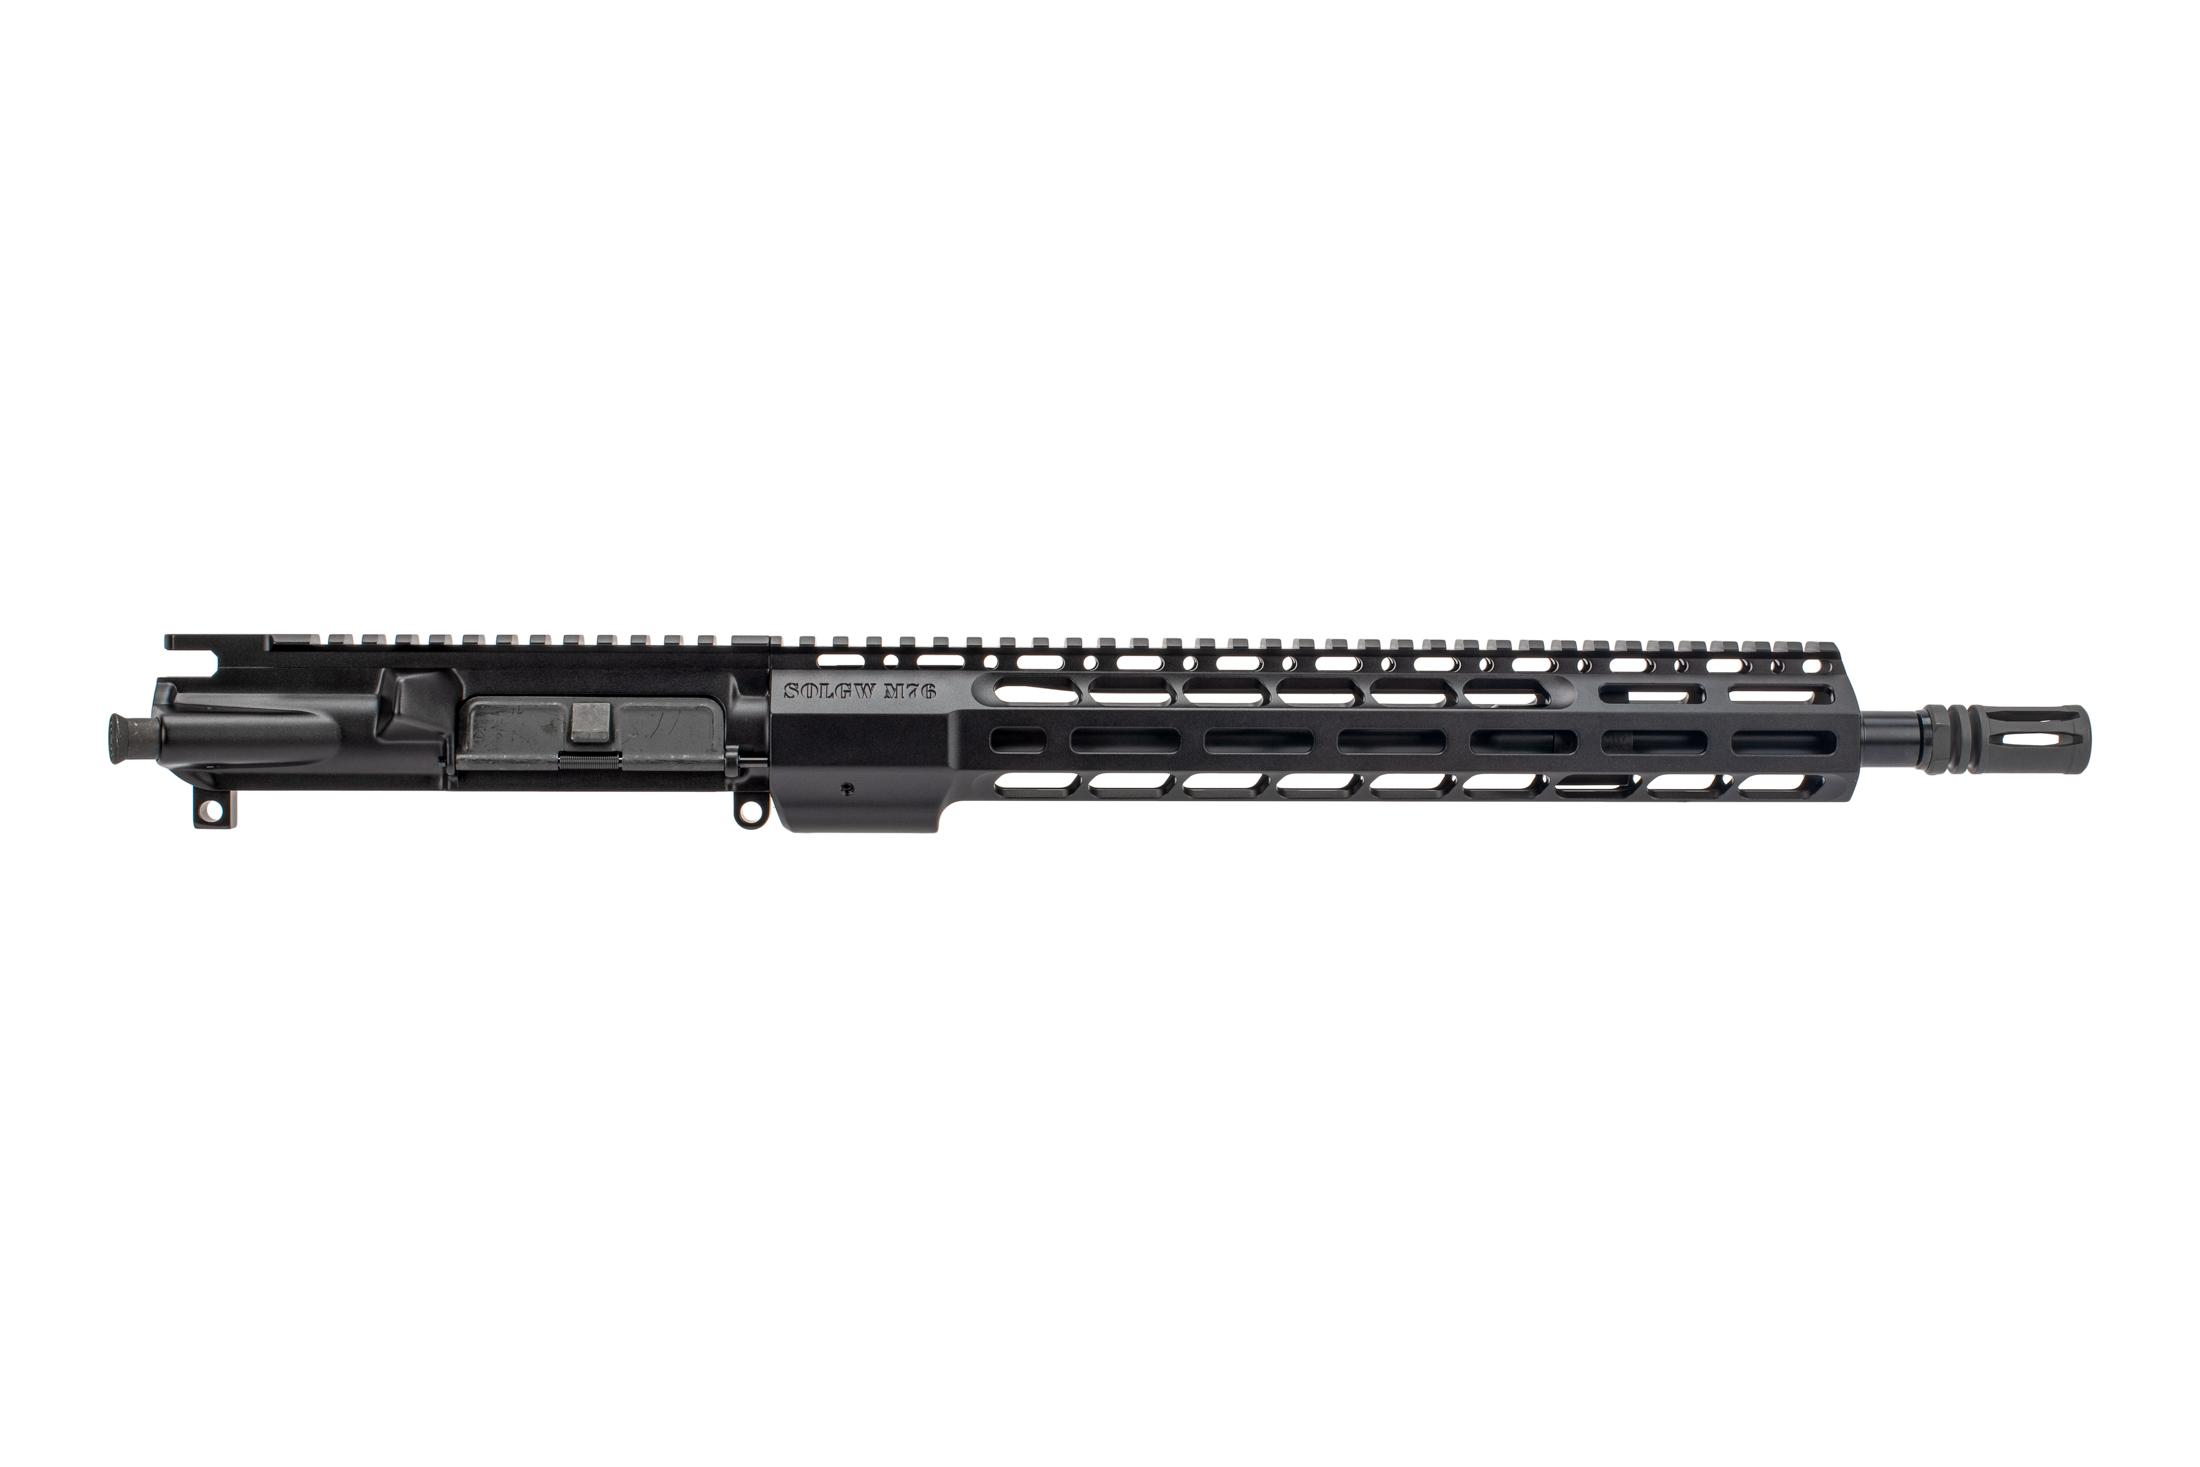 SOLGW M476 AR-15 barreled upper receiver is chambered in 5.56 NATO